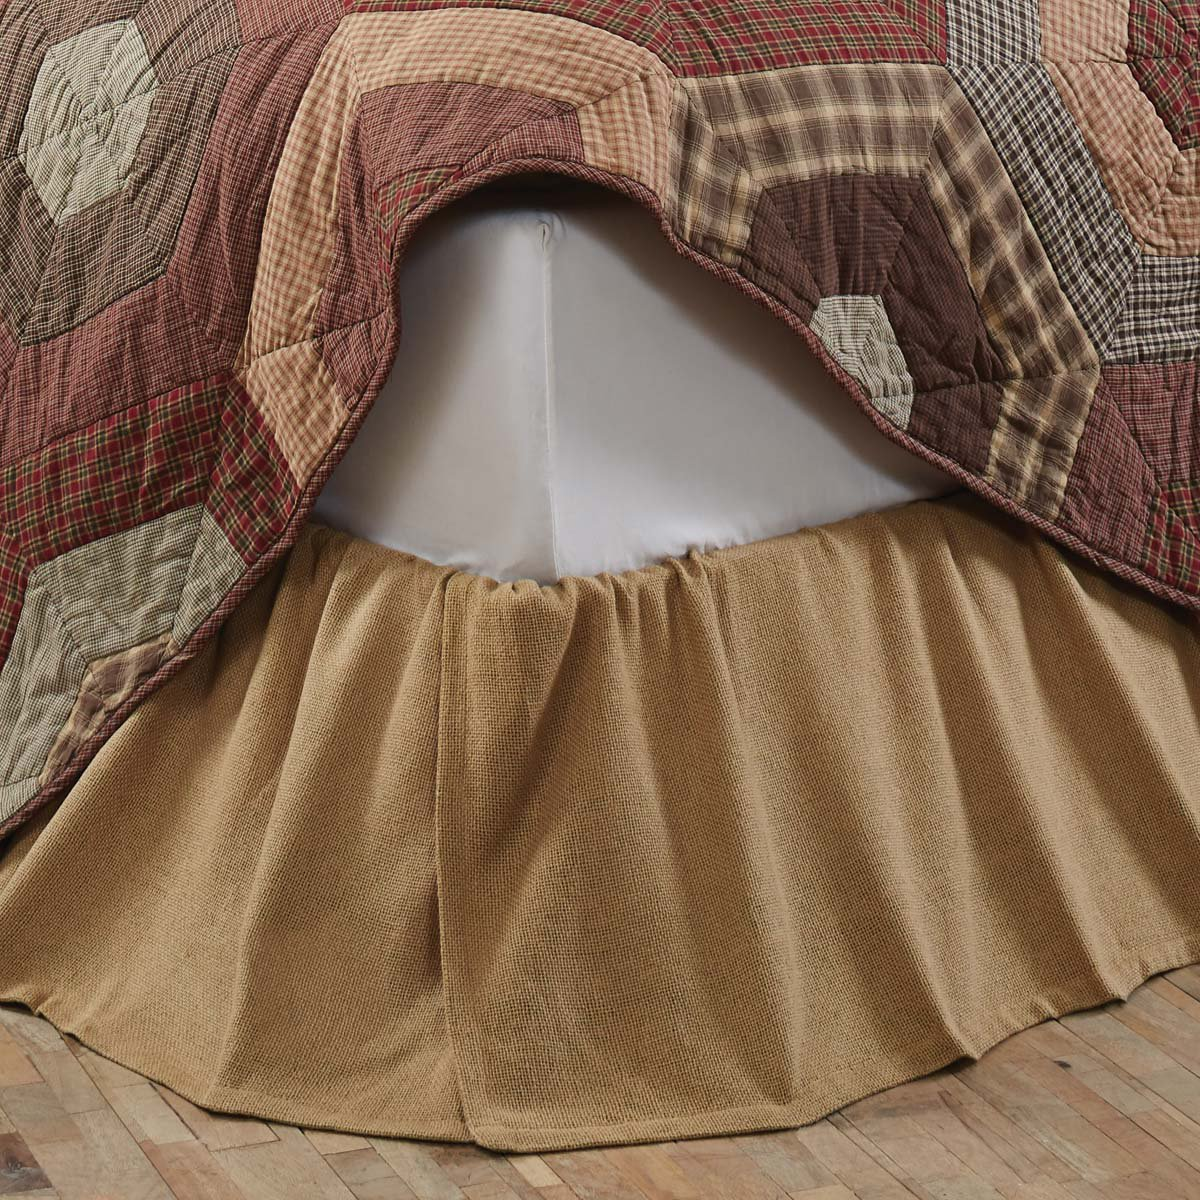 Image of: Burlap Bed Skirt Type